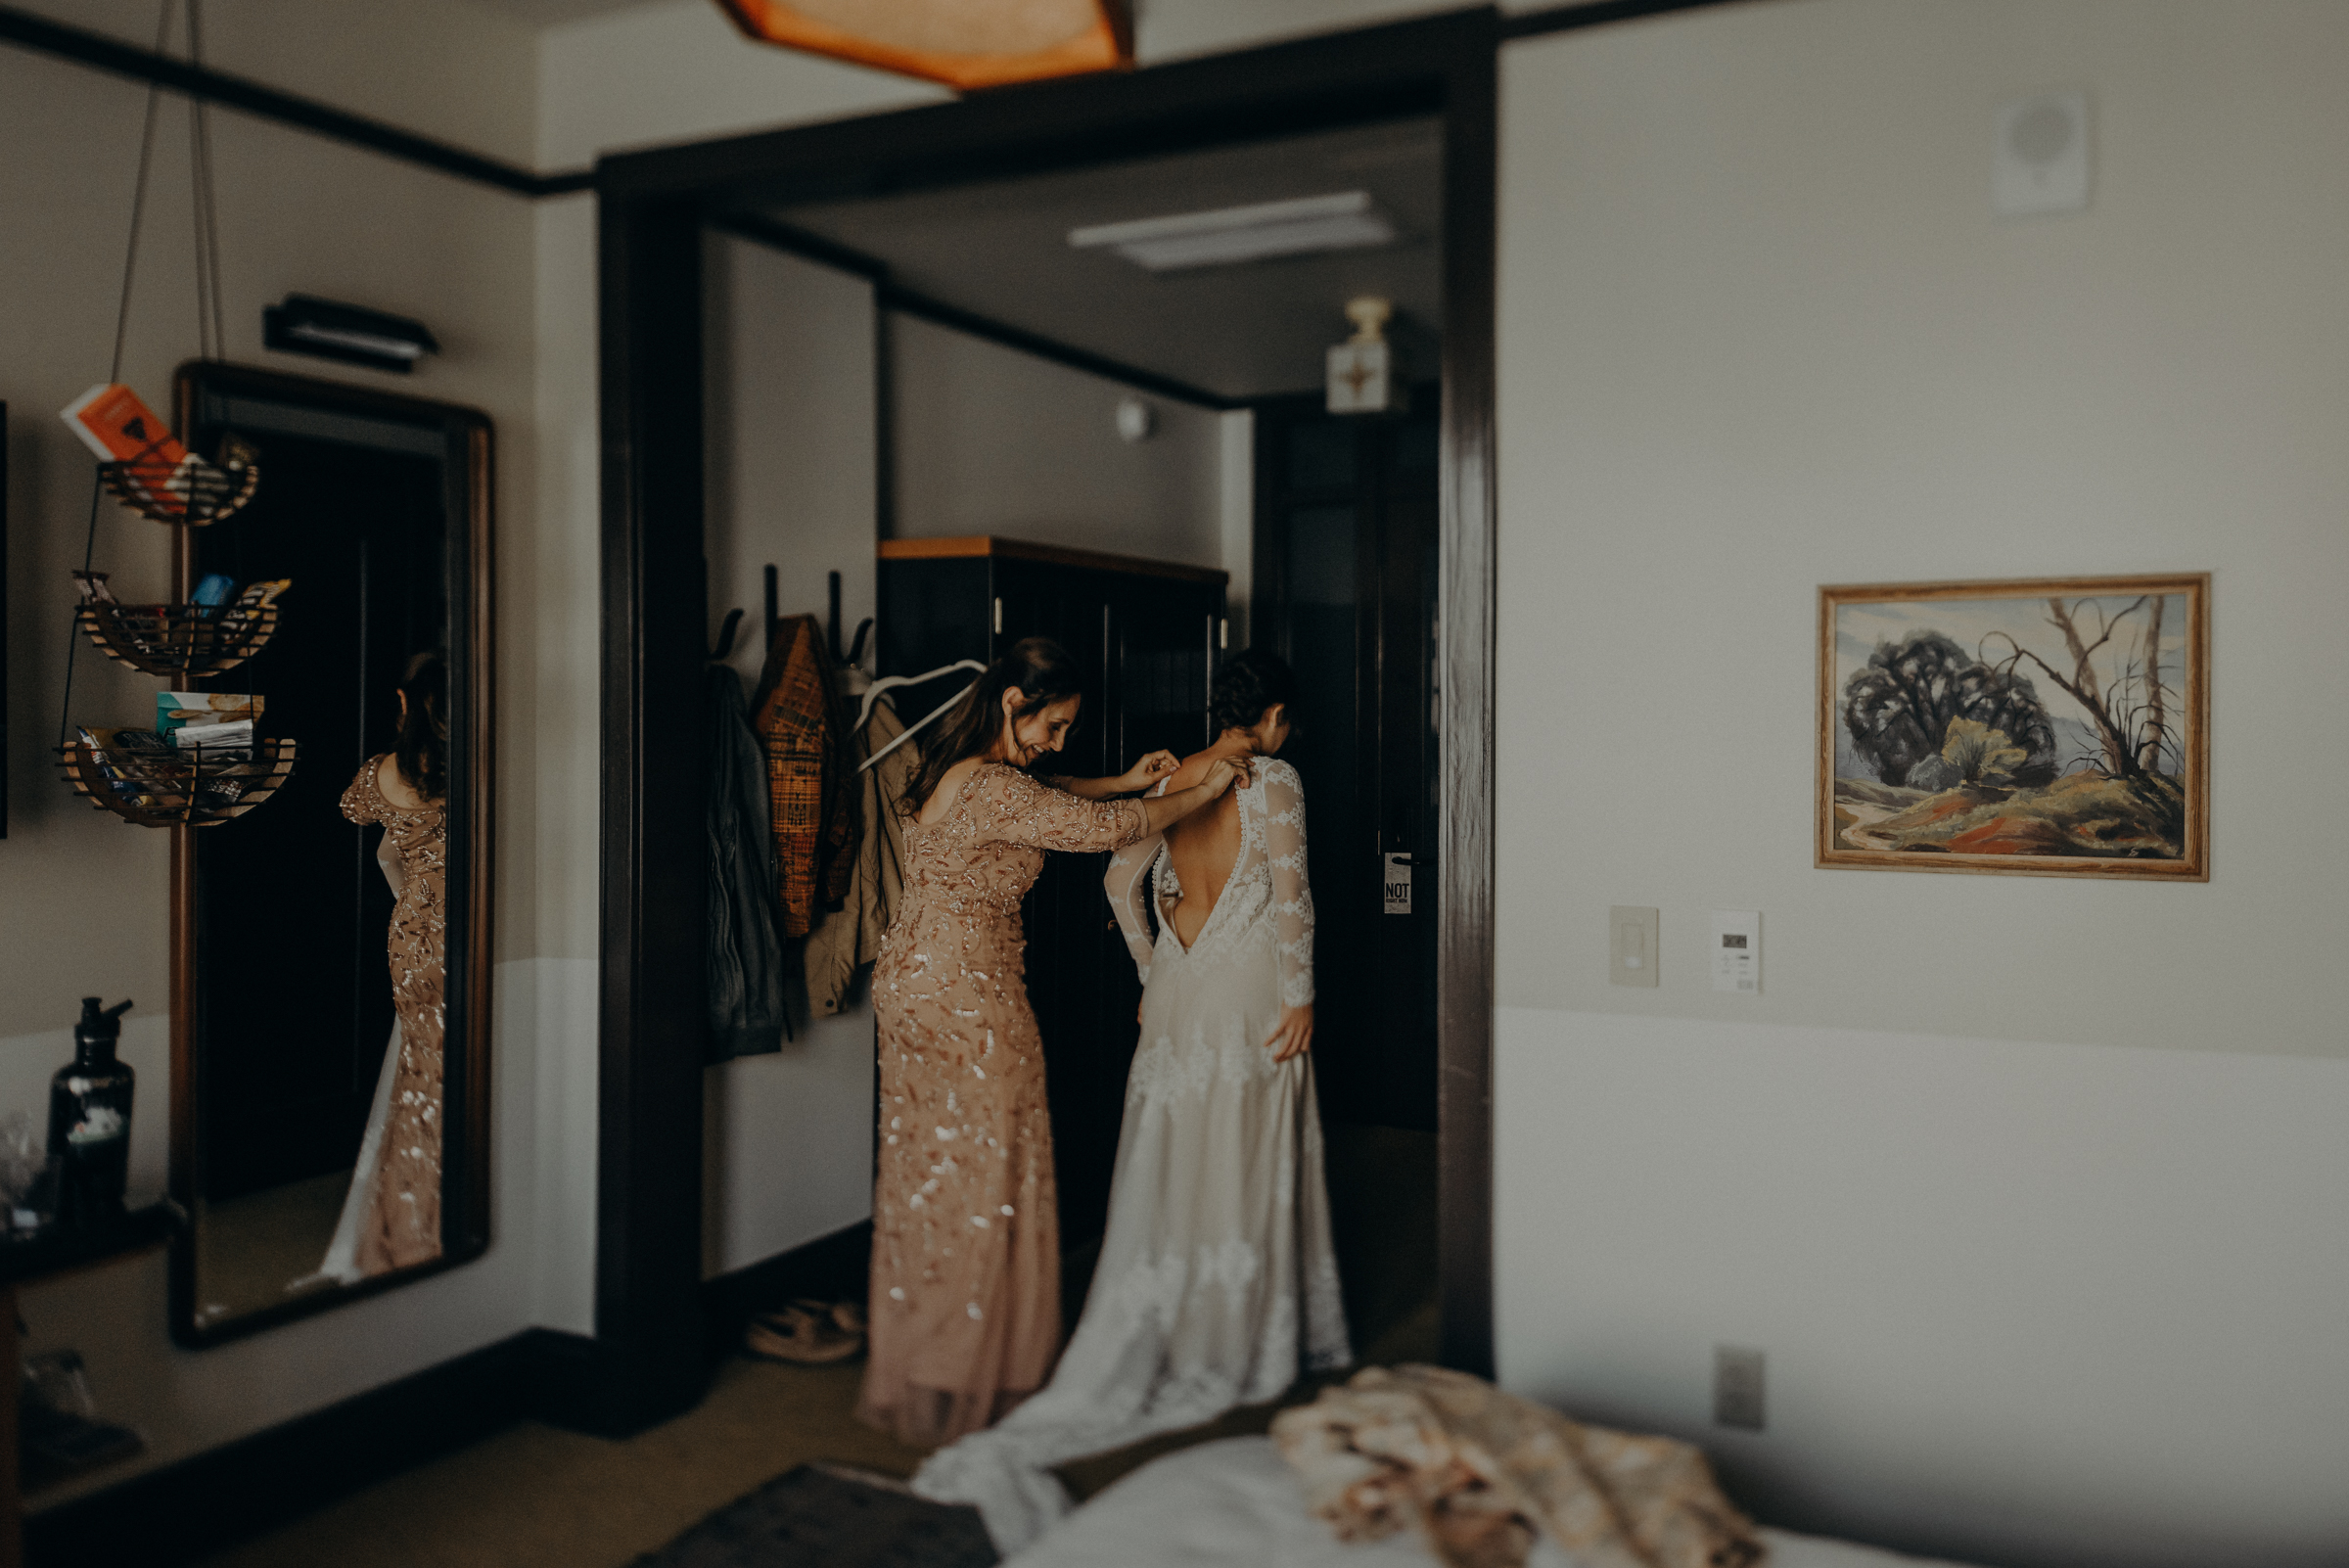 Isaiah + Taylor Photography - The Unique Space Wedding, Los Angeles Wedding Photography 008.jpg